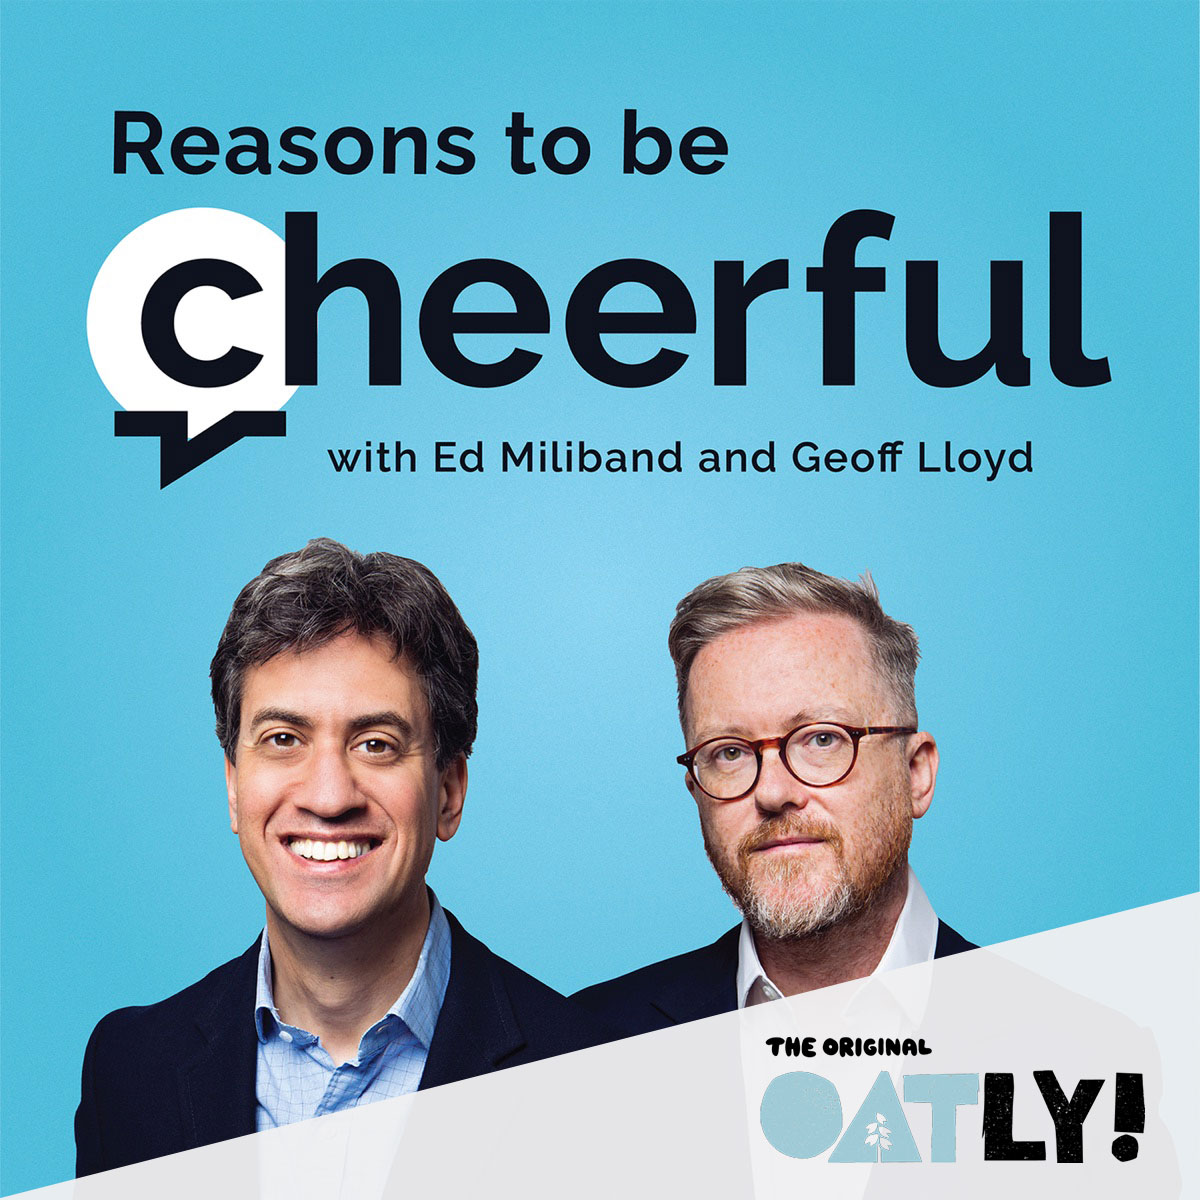 reasons to be cheerful and patly